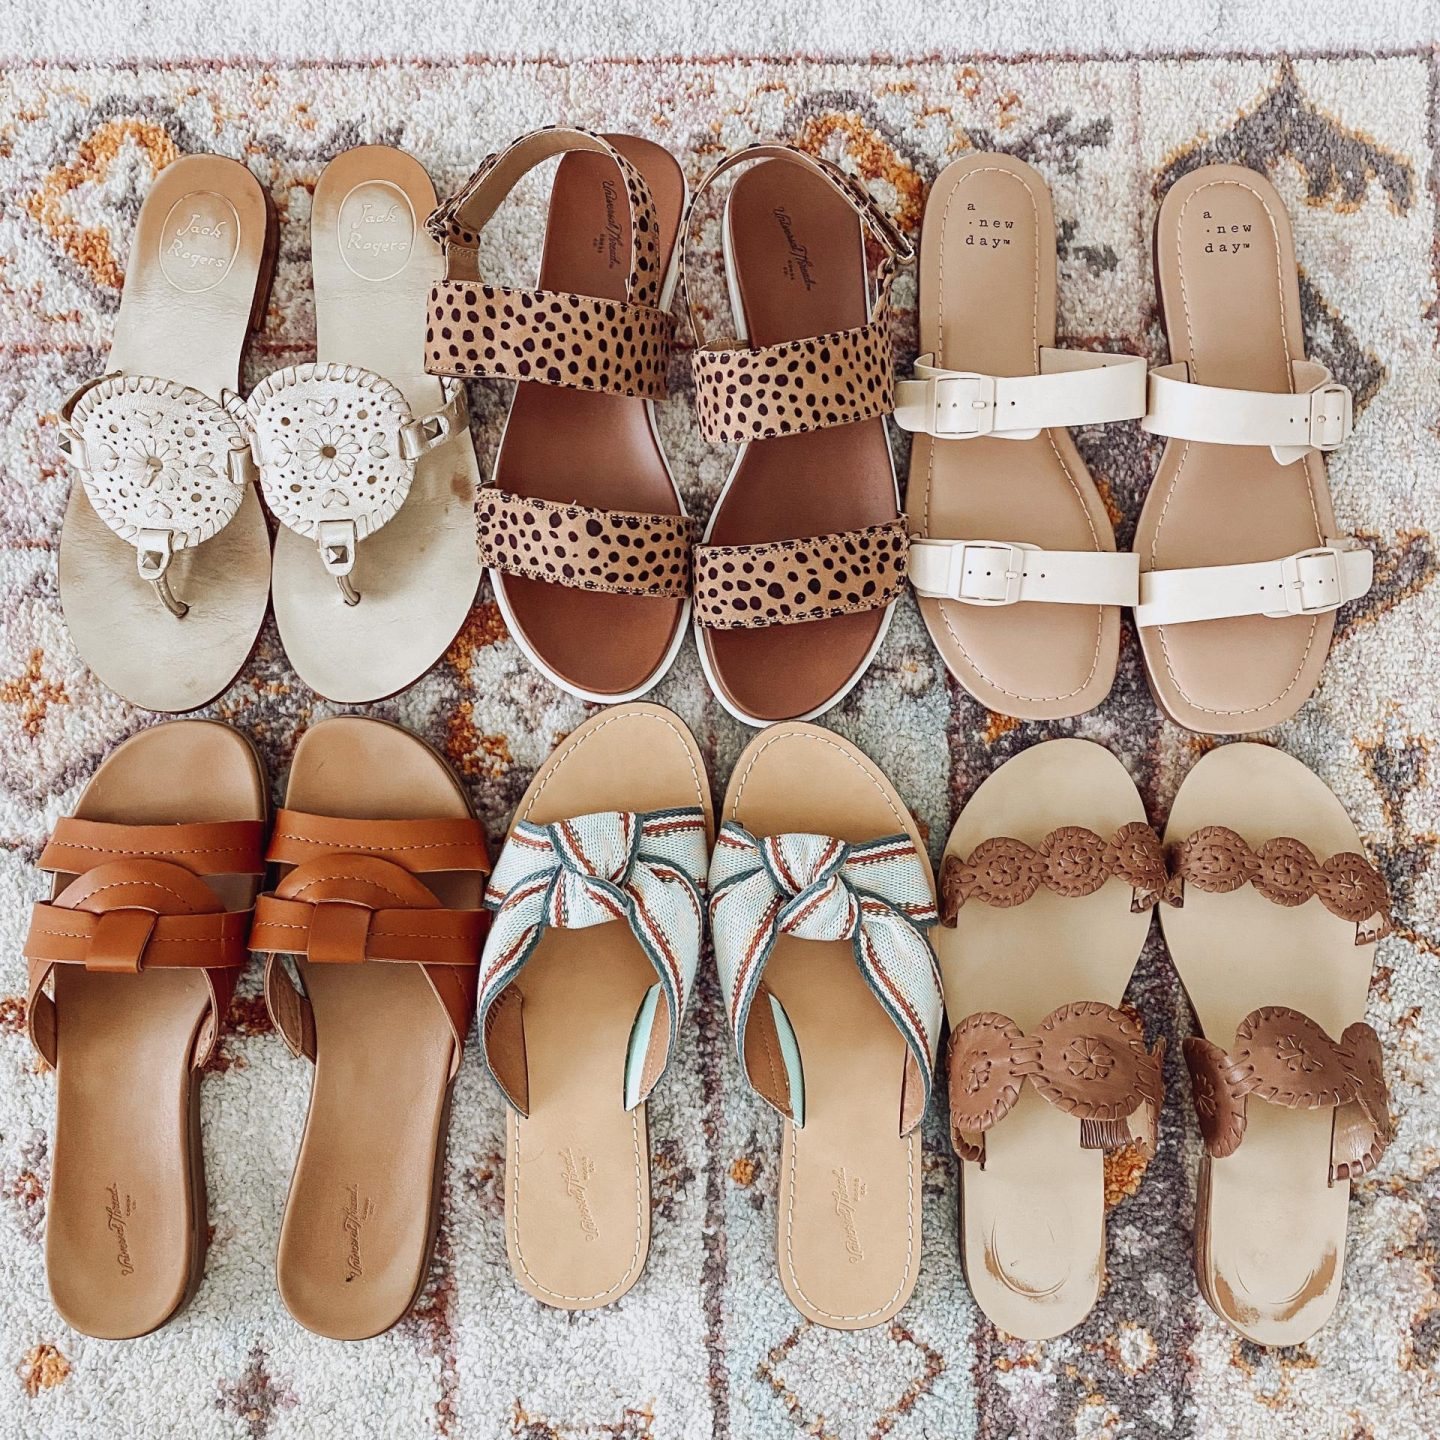 NC blogger Rebecca Lately is sharing her favorite summer shoes. If you're looking for cute shoes for summer, check this out!